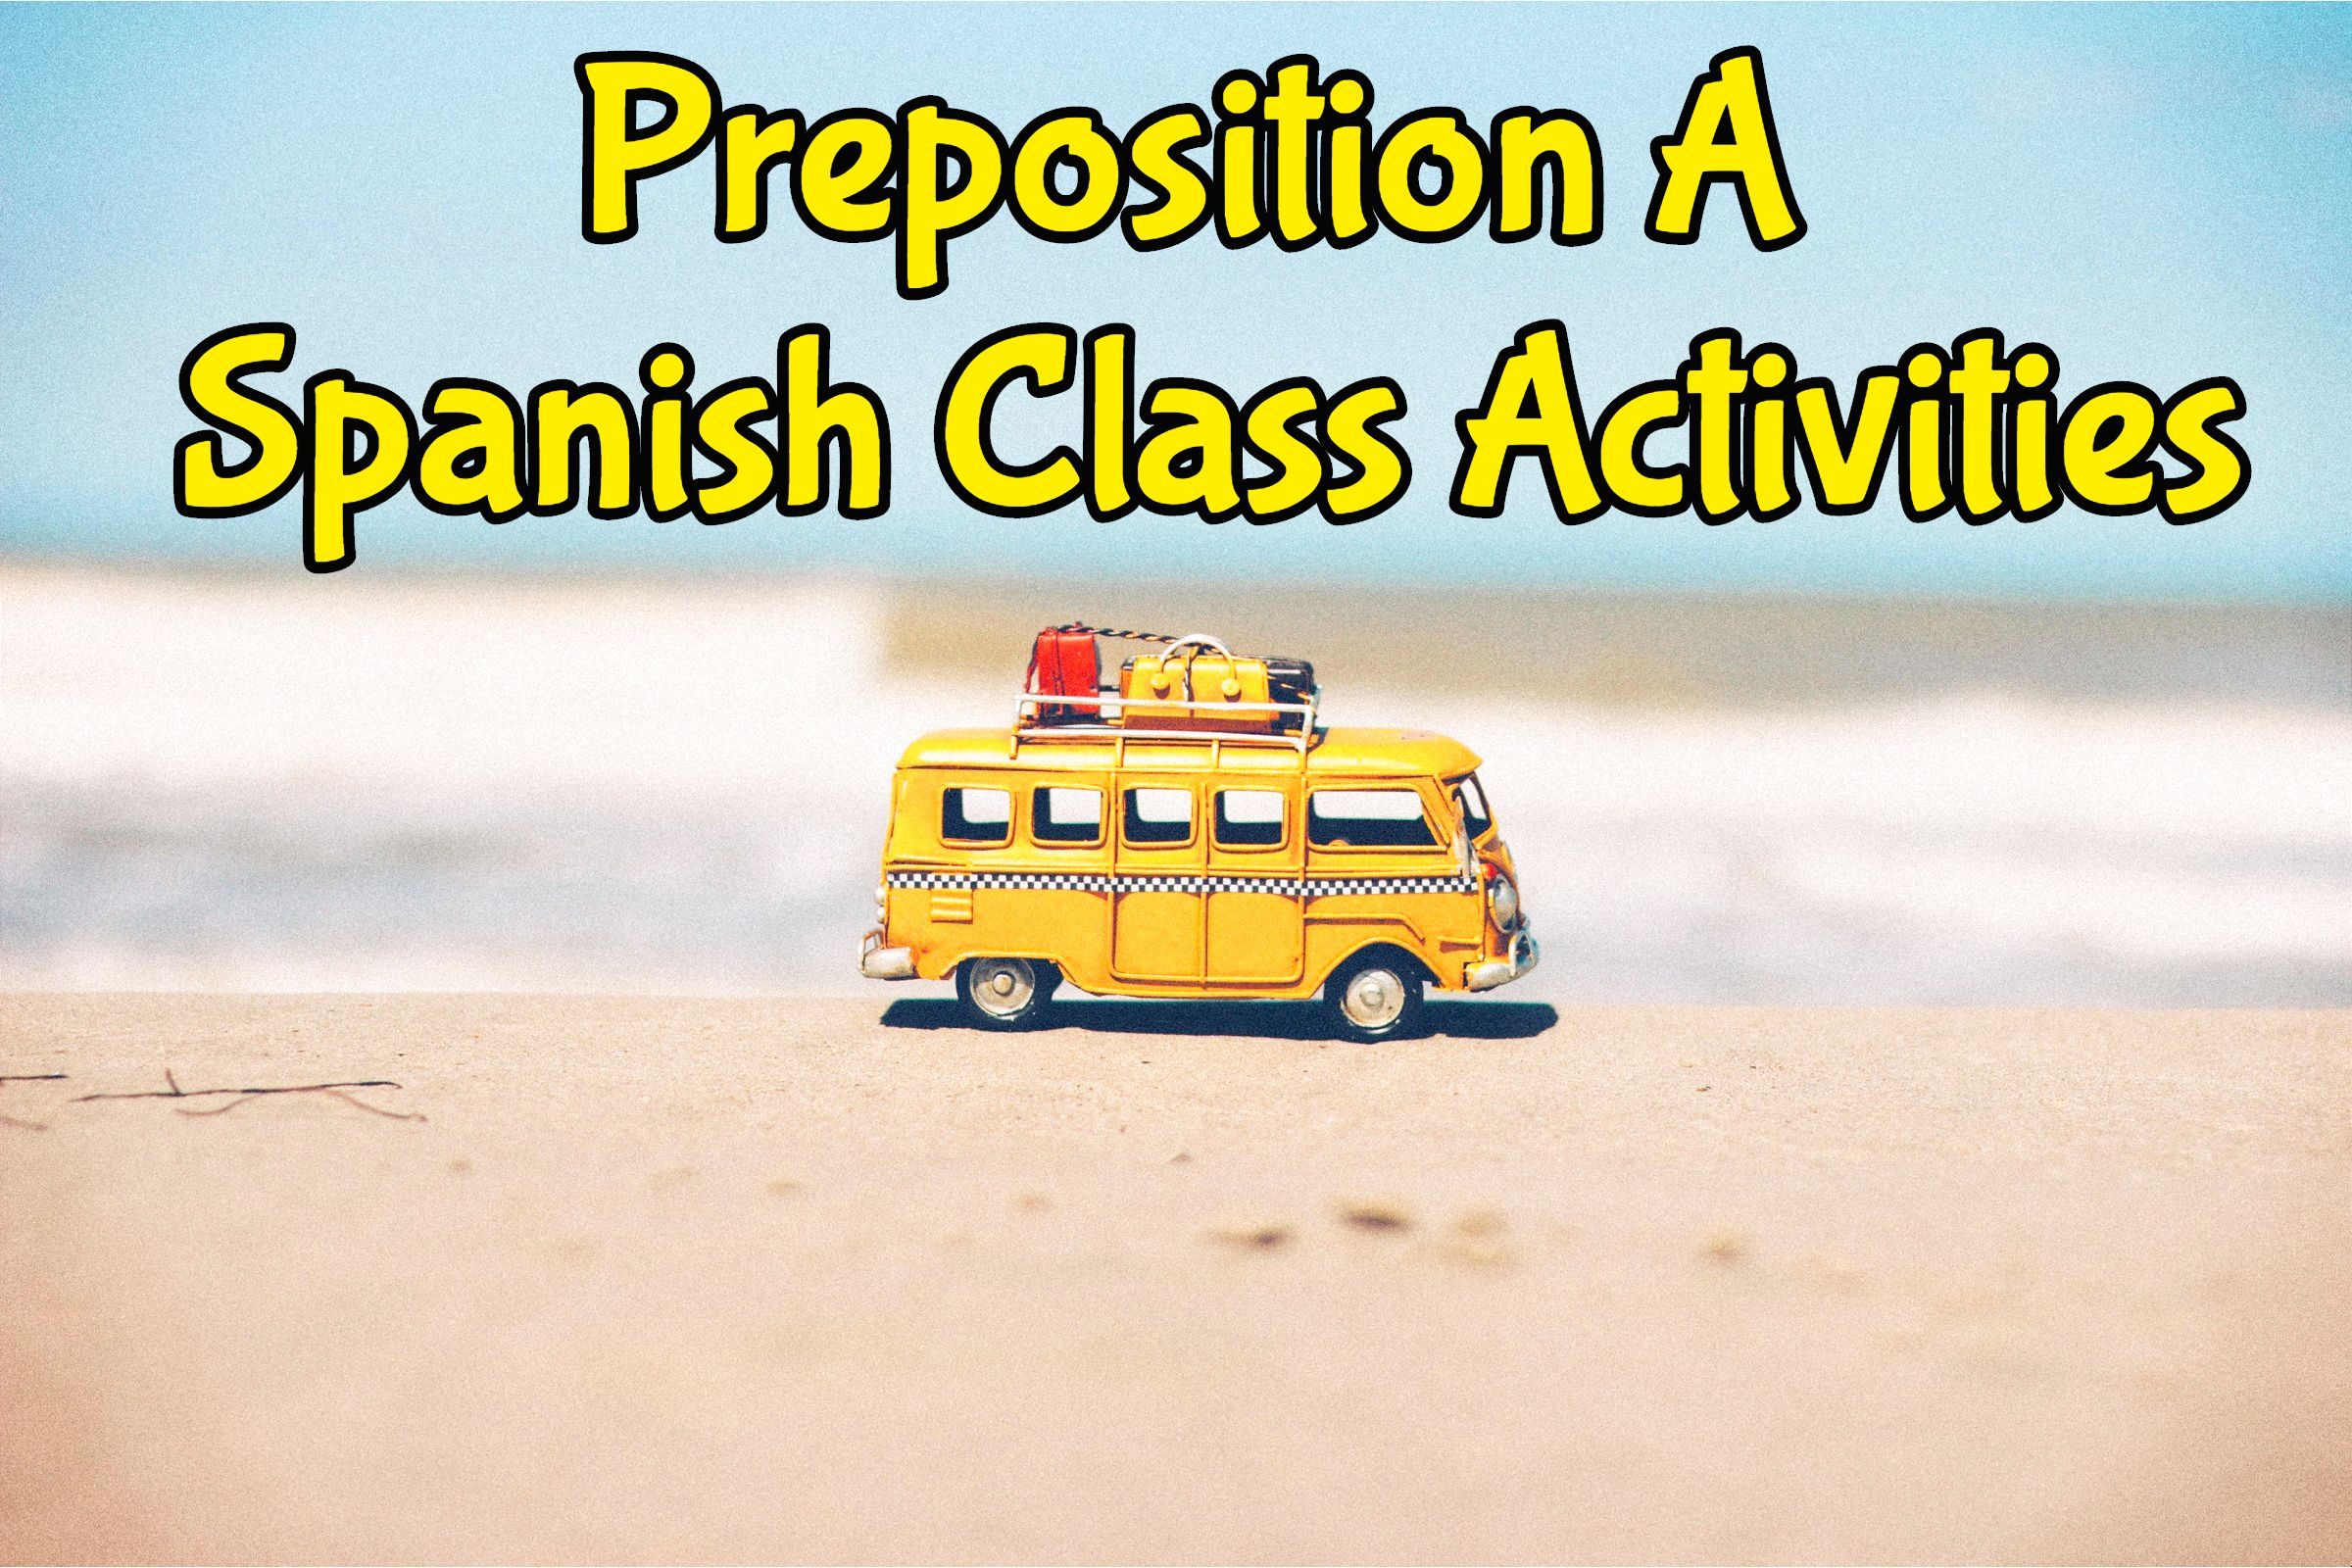 Preposition A Spanish Class Activities With Images